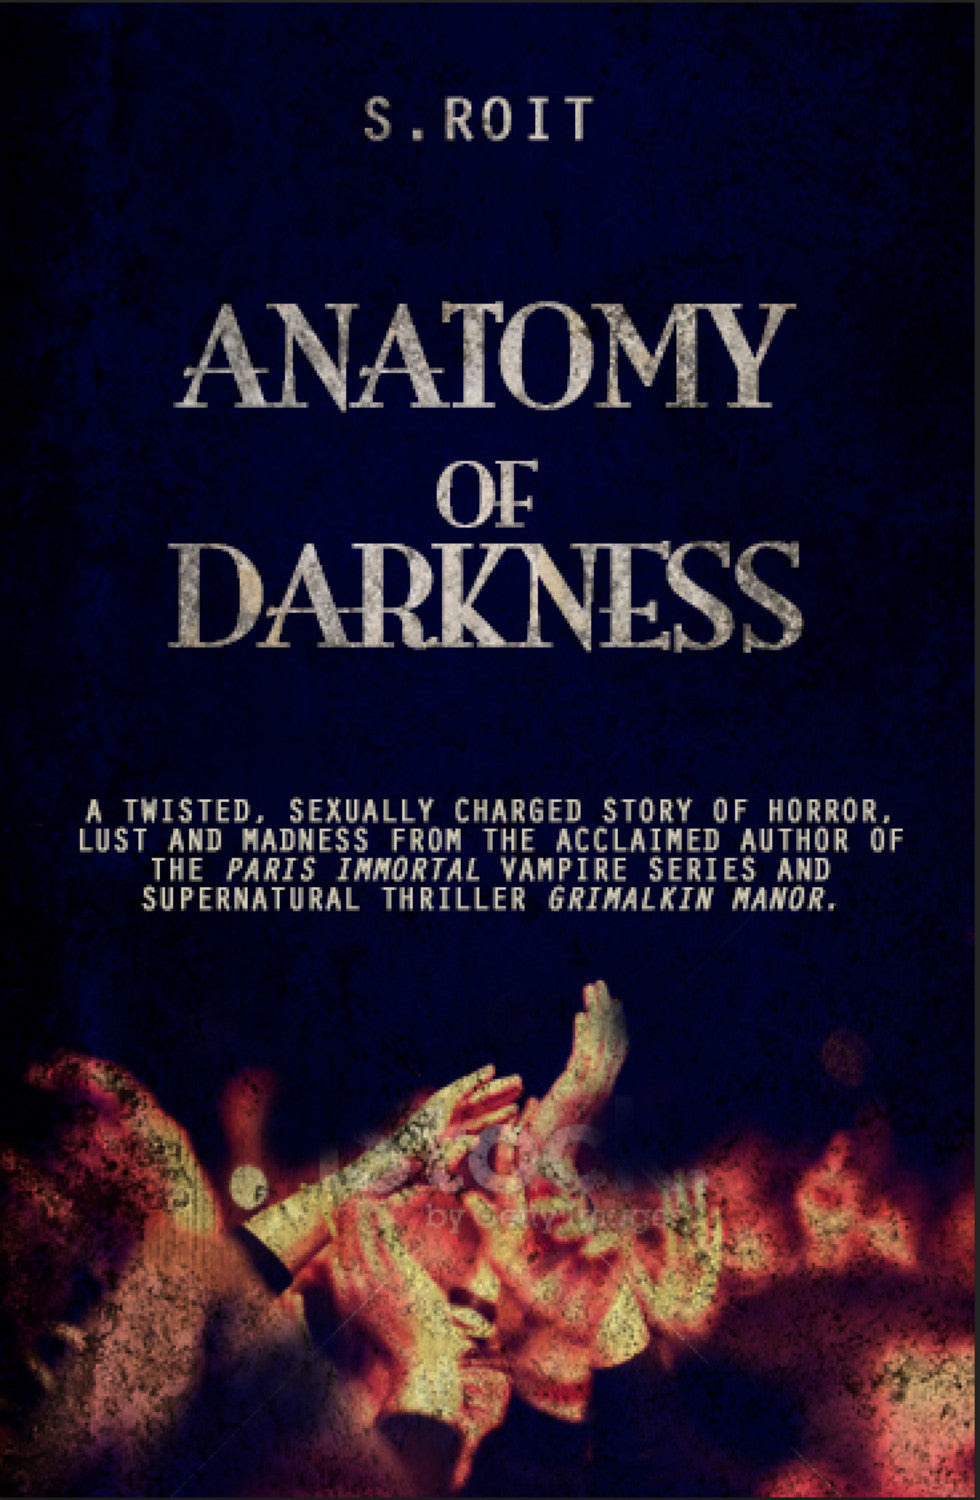 Anatomy of Darkness